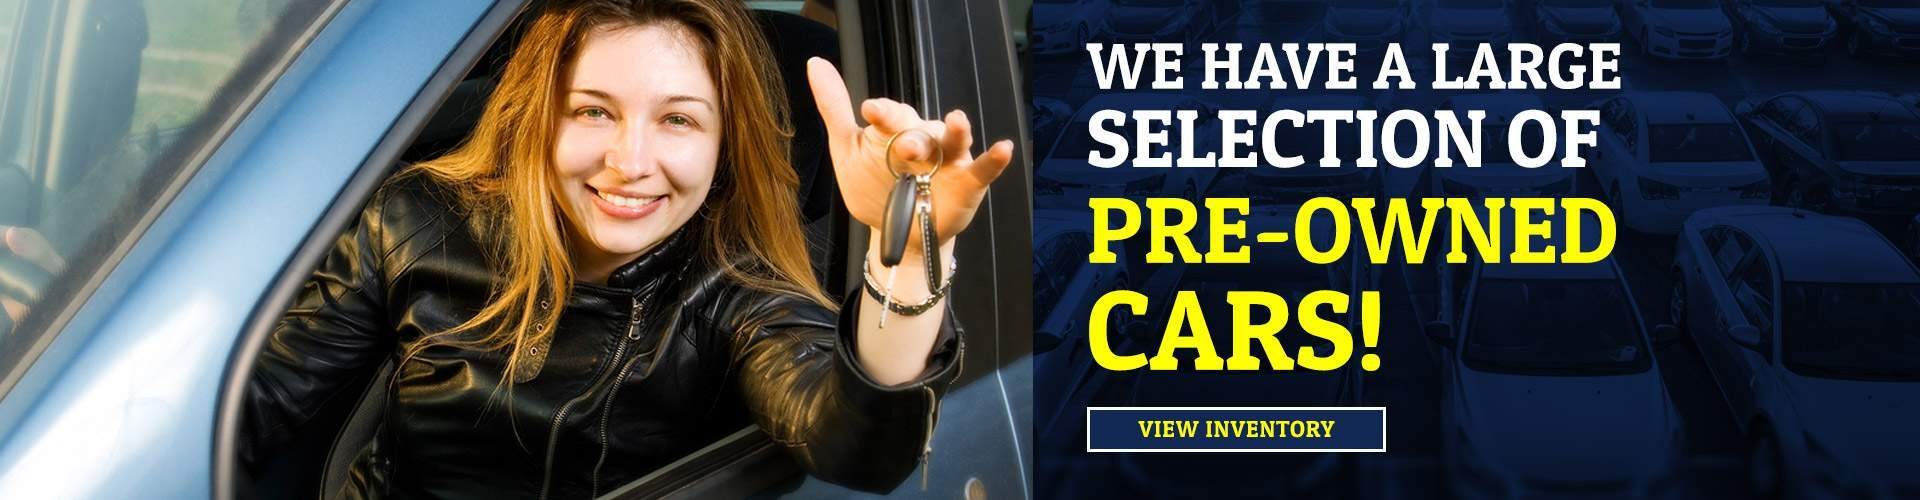 Large Selction of Pre-Owned Cars!